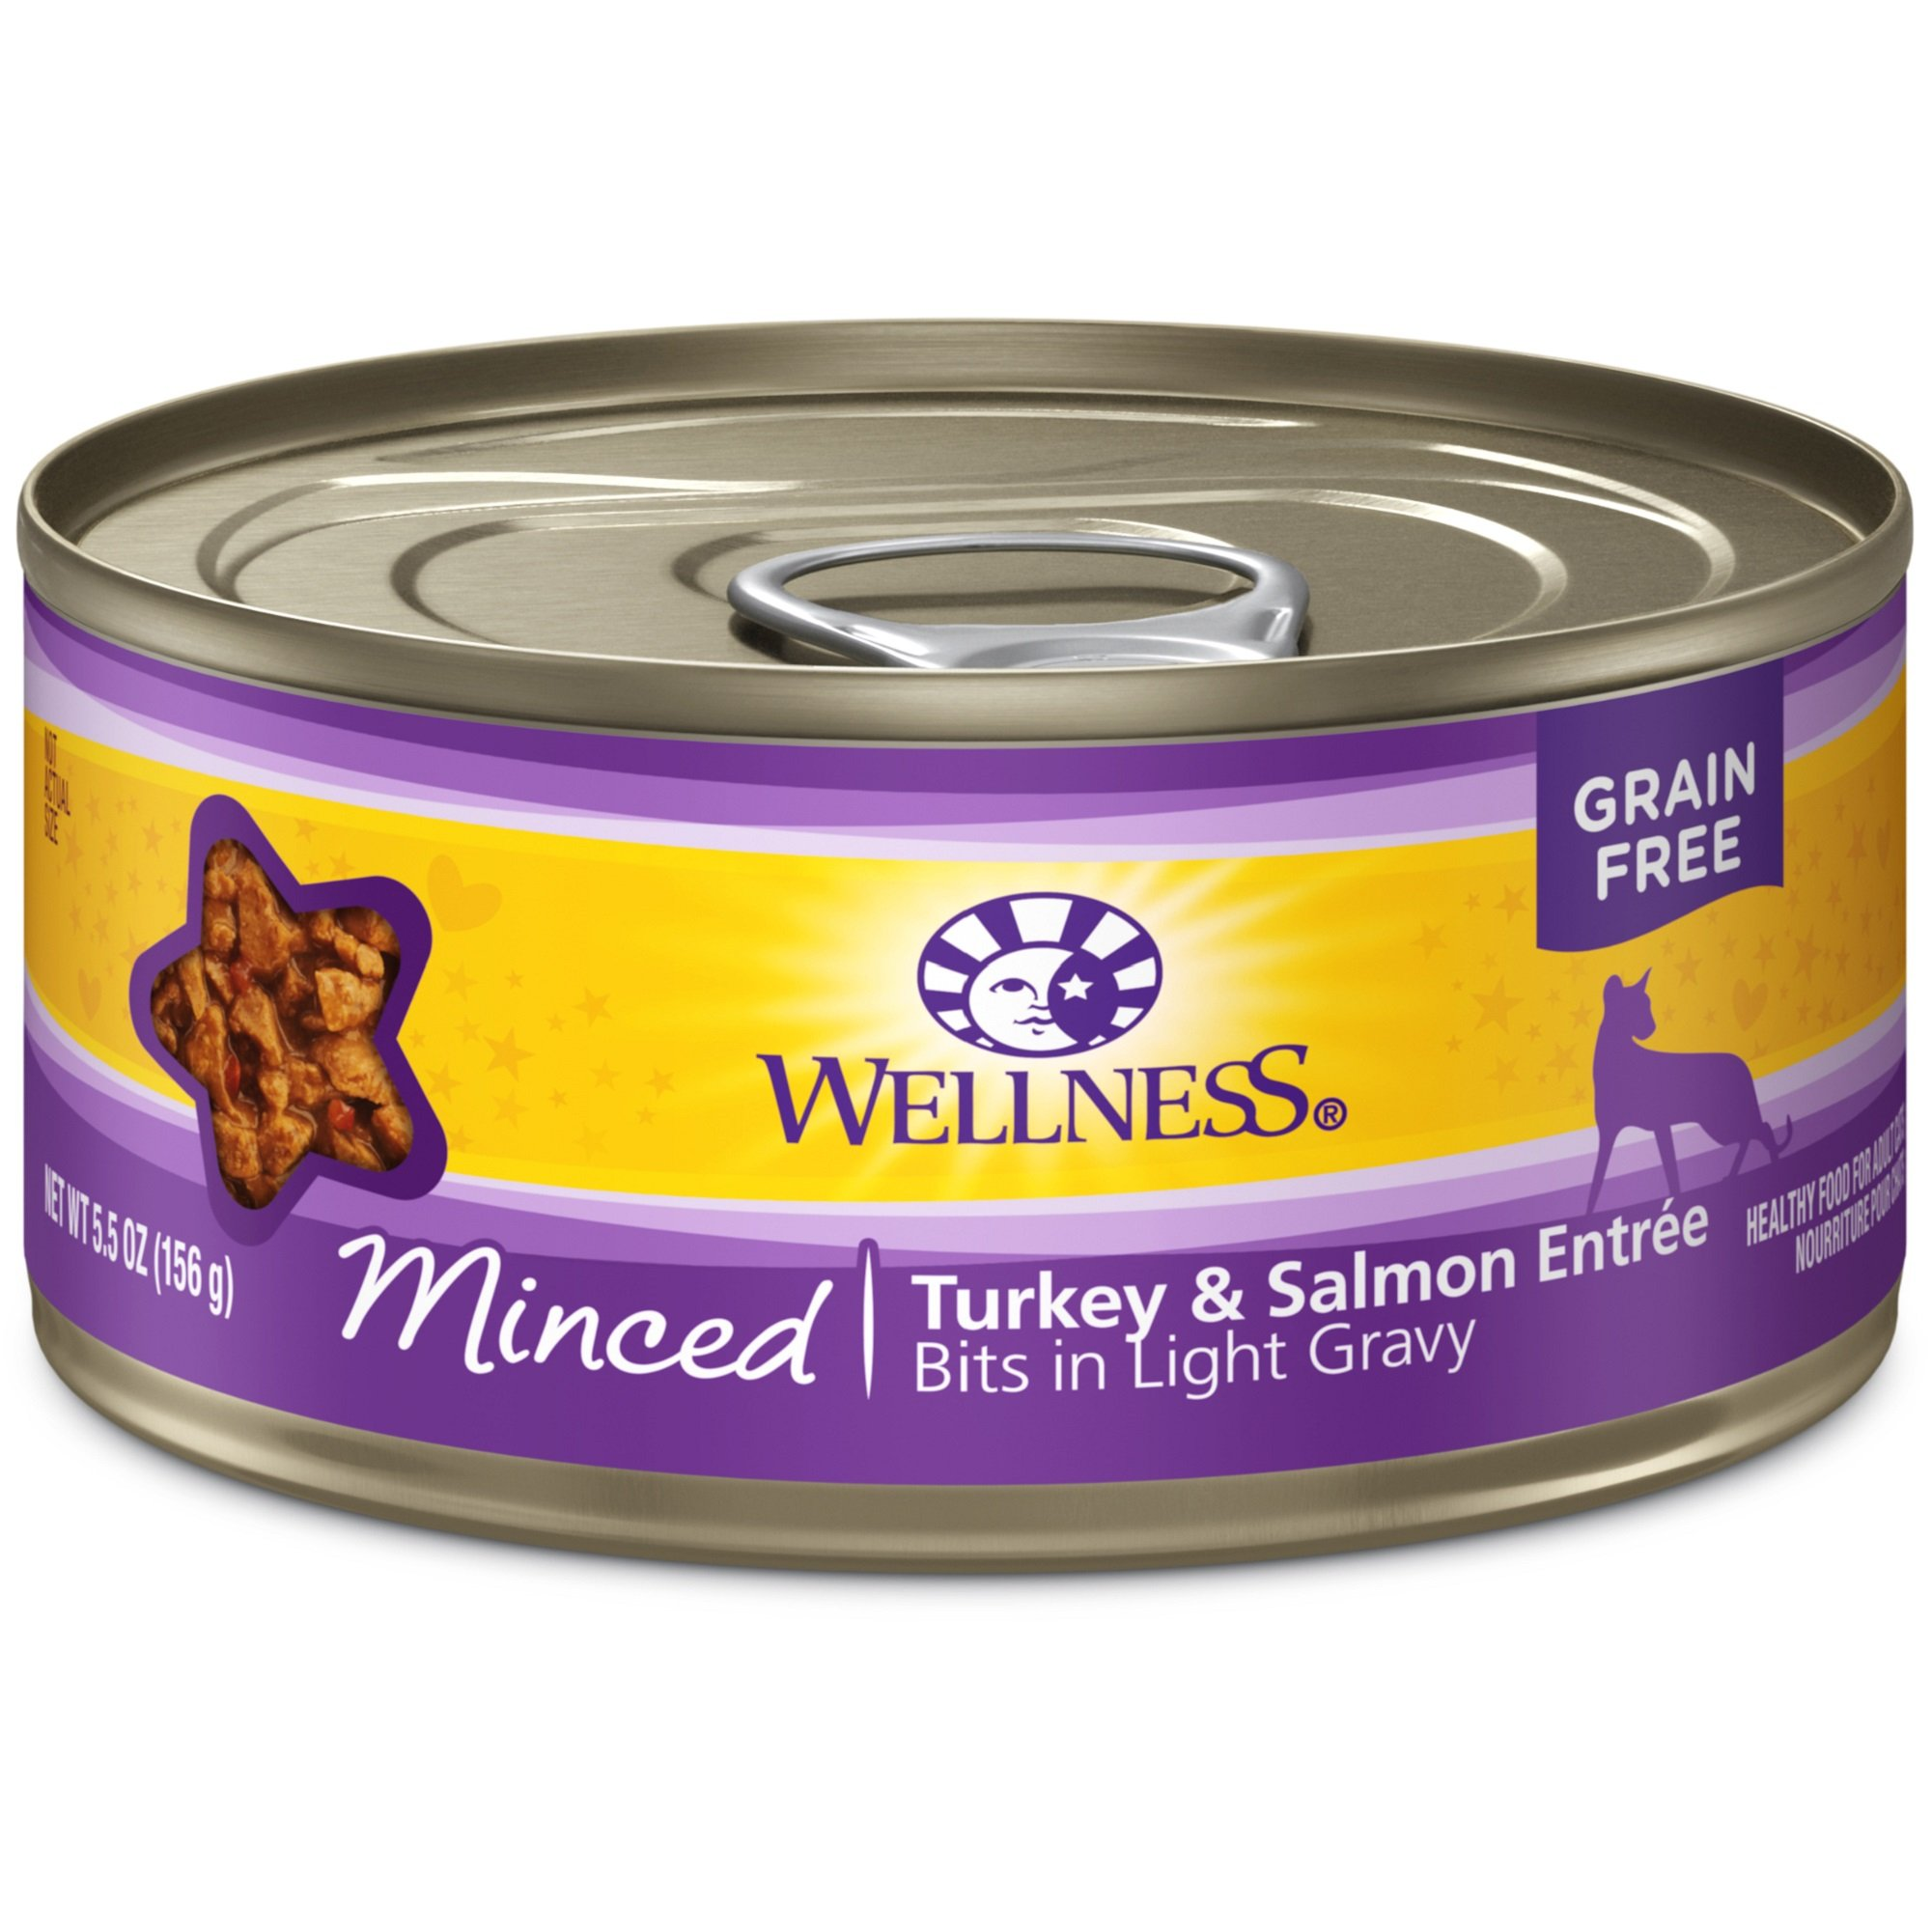 Wellness Complete Health Natural Grain Free Wet Canned Cat Food, Minced Turkey & Salmon Entrée, 5.5-Ounce Can (Pack Of 24) by Wellness Natural Pet Food